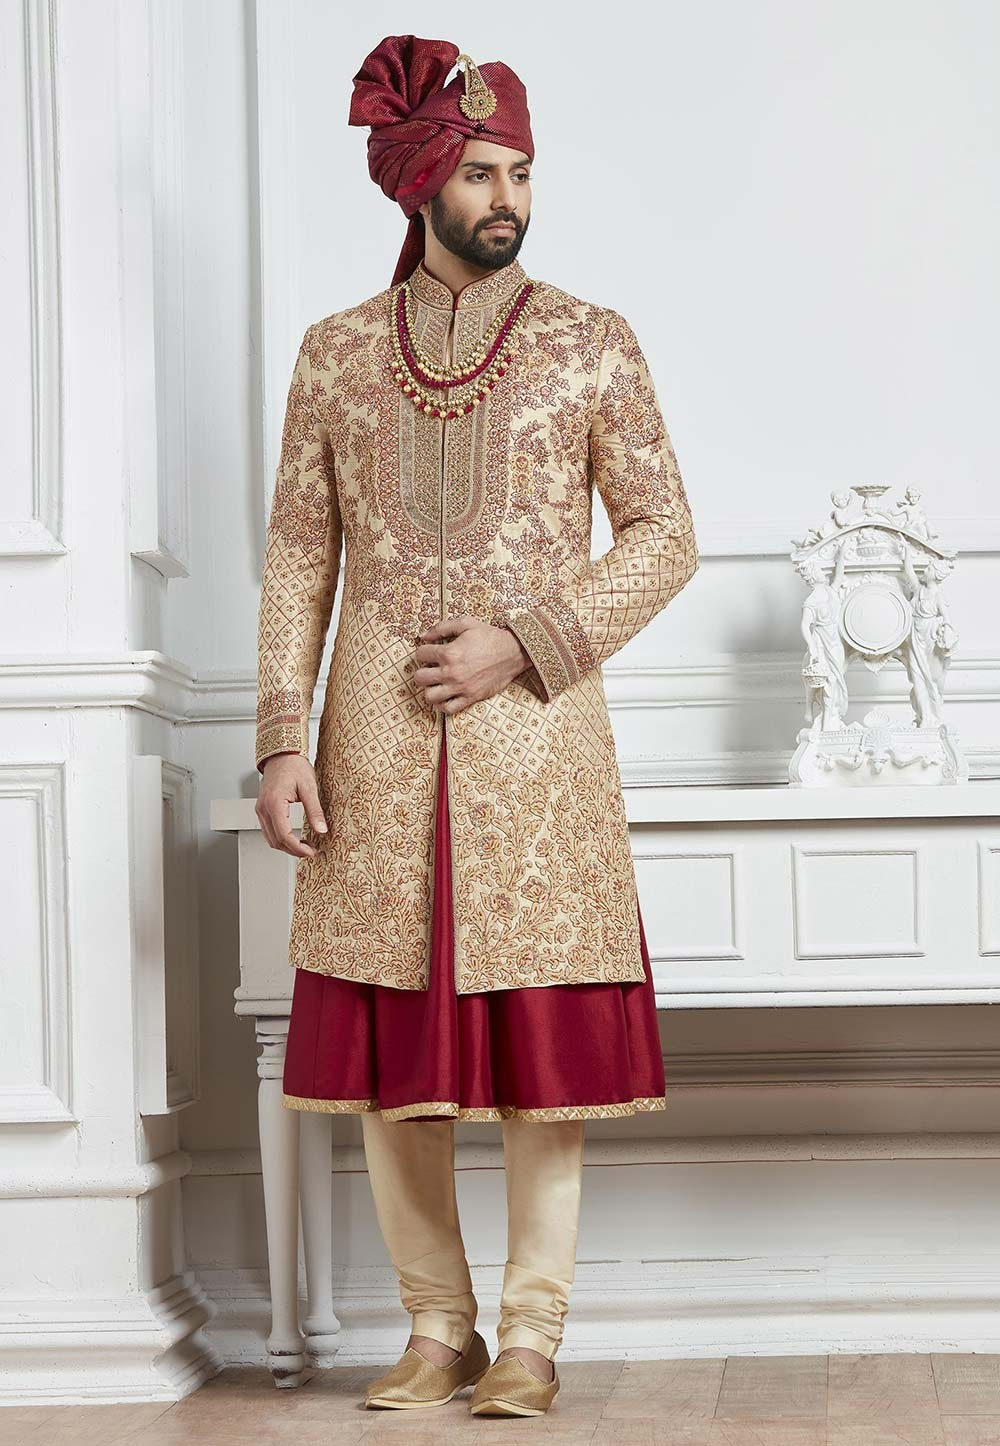 Buy Golden,Maroon Color Indian Wedding Sherwani for men